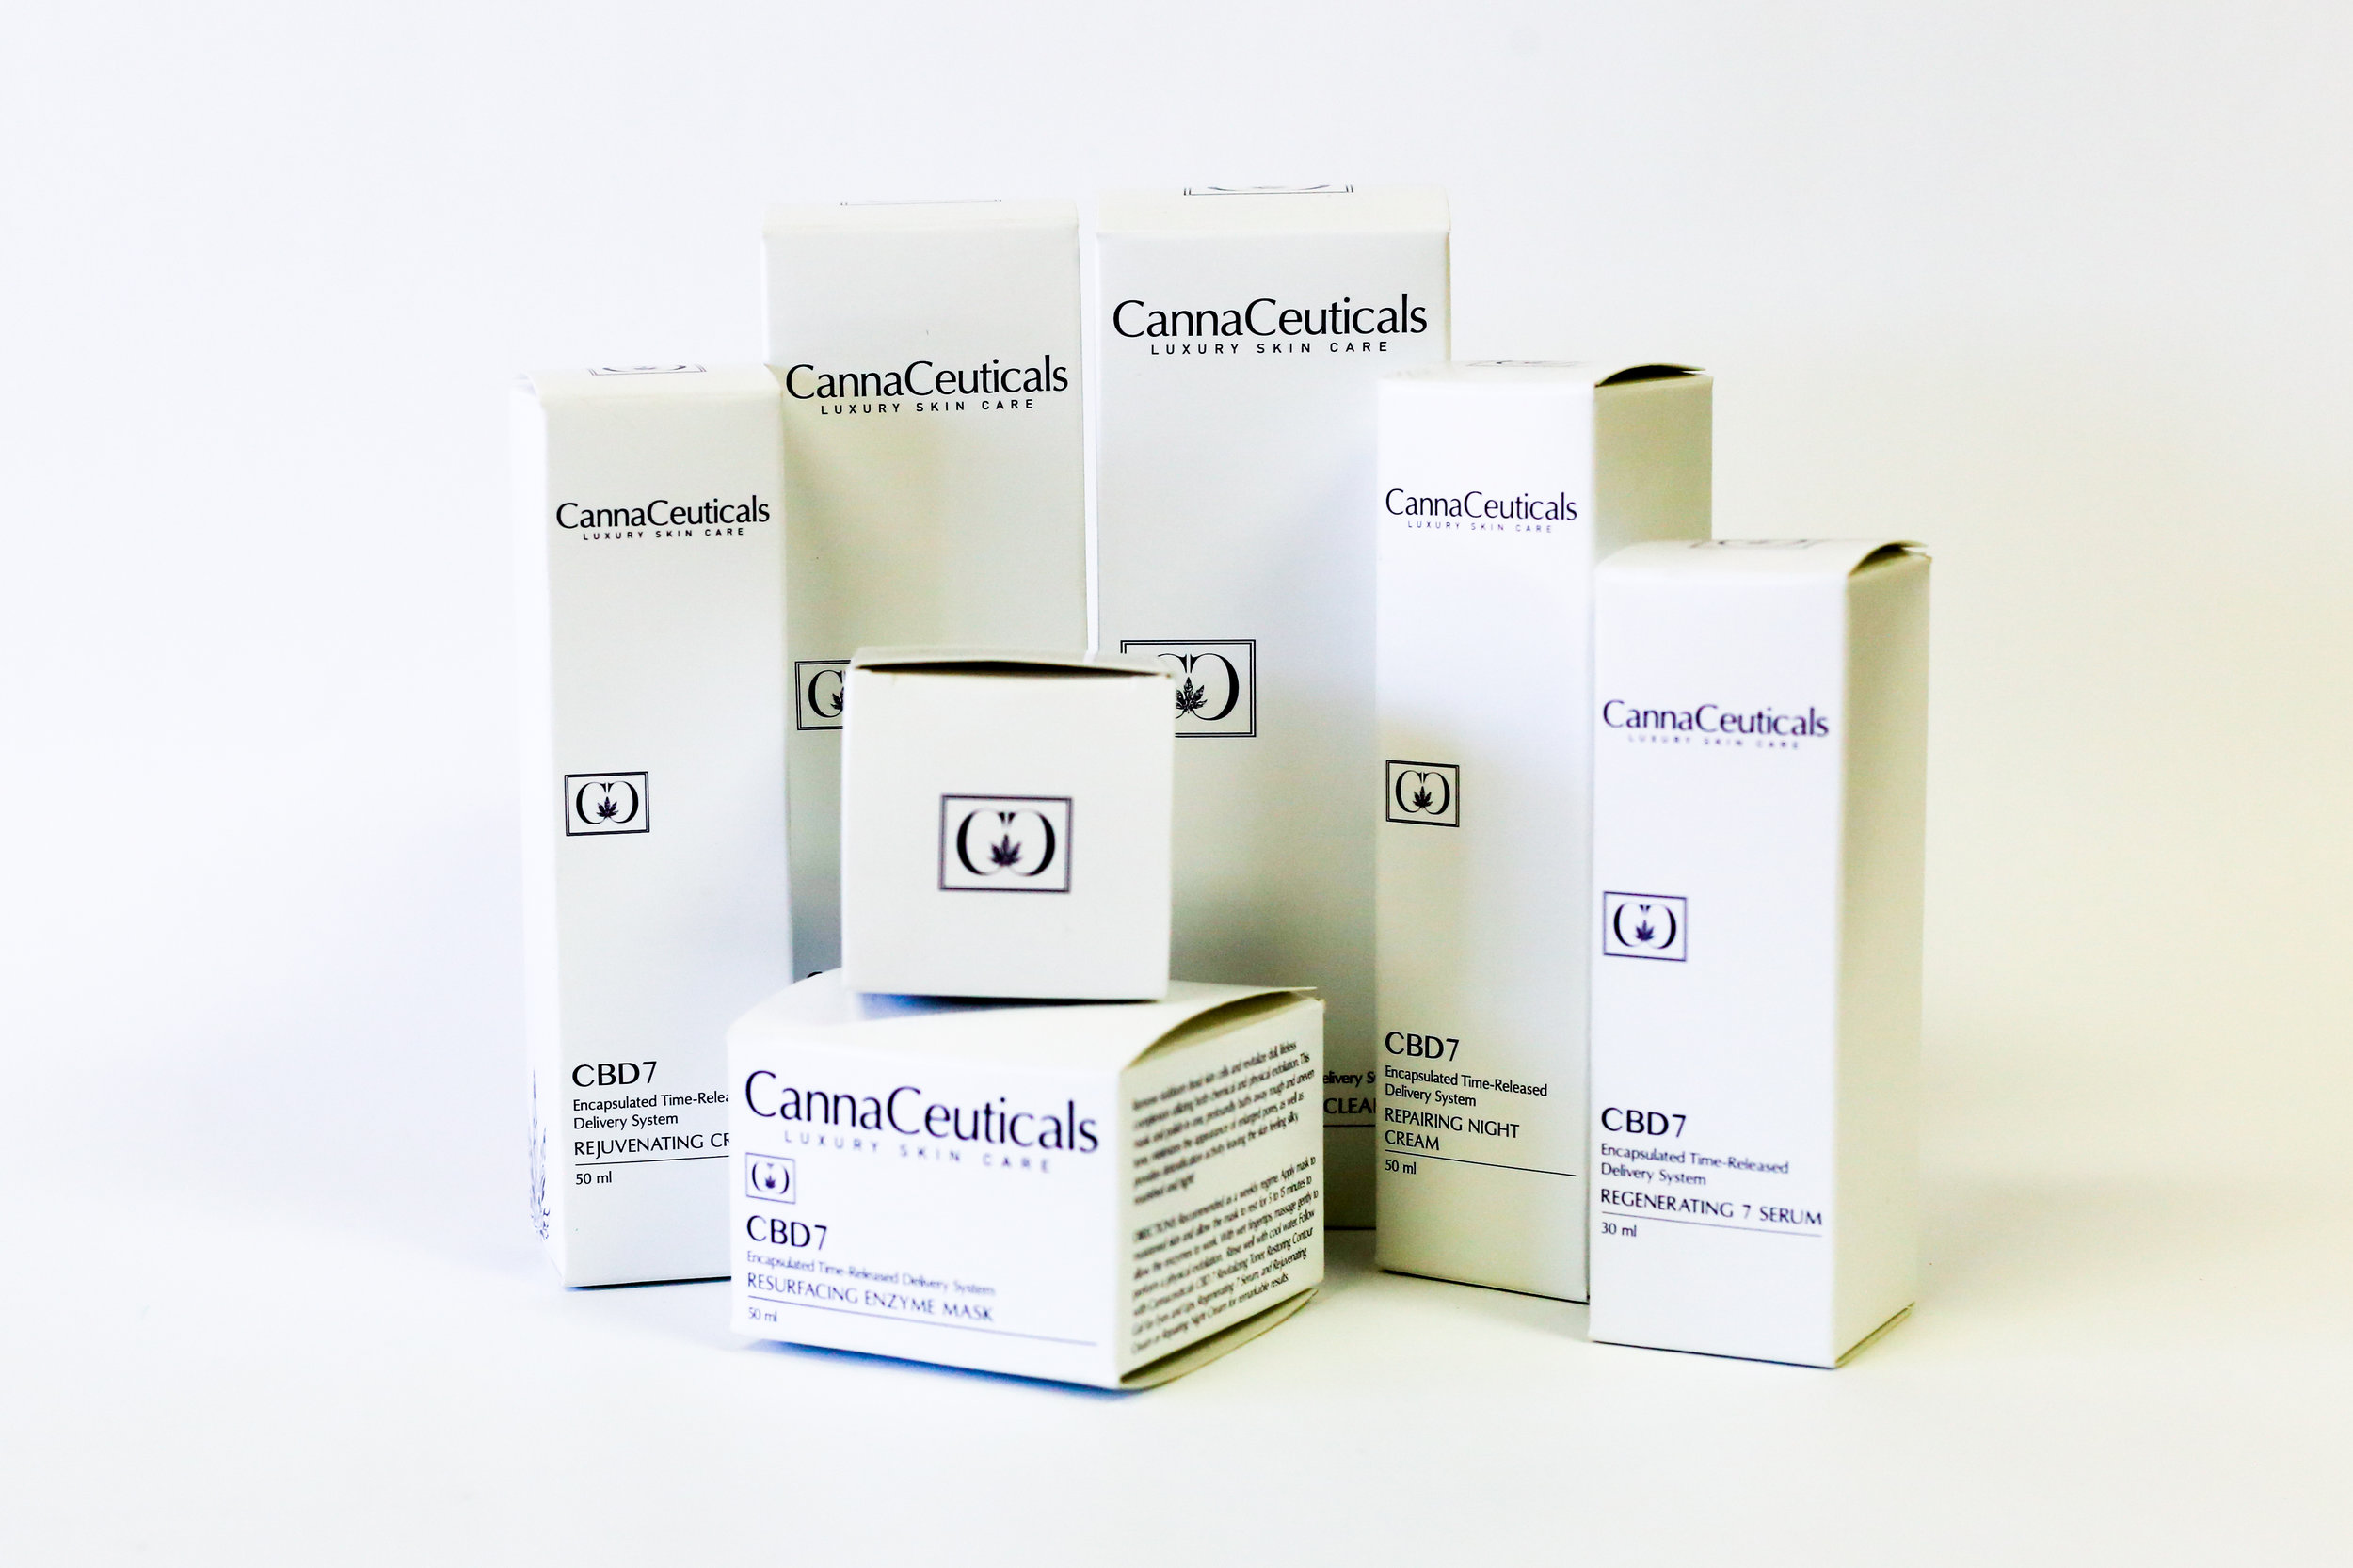 CannaCeuticals Luxury Skin Care Other Cannabis Packaging